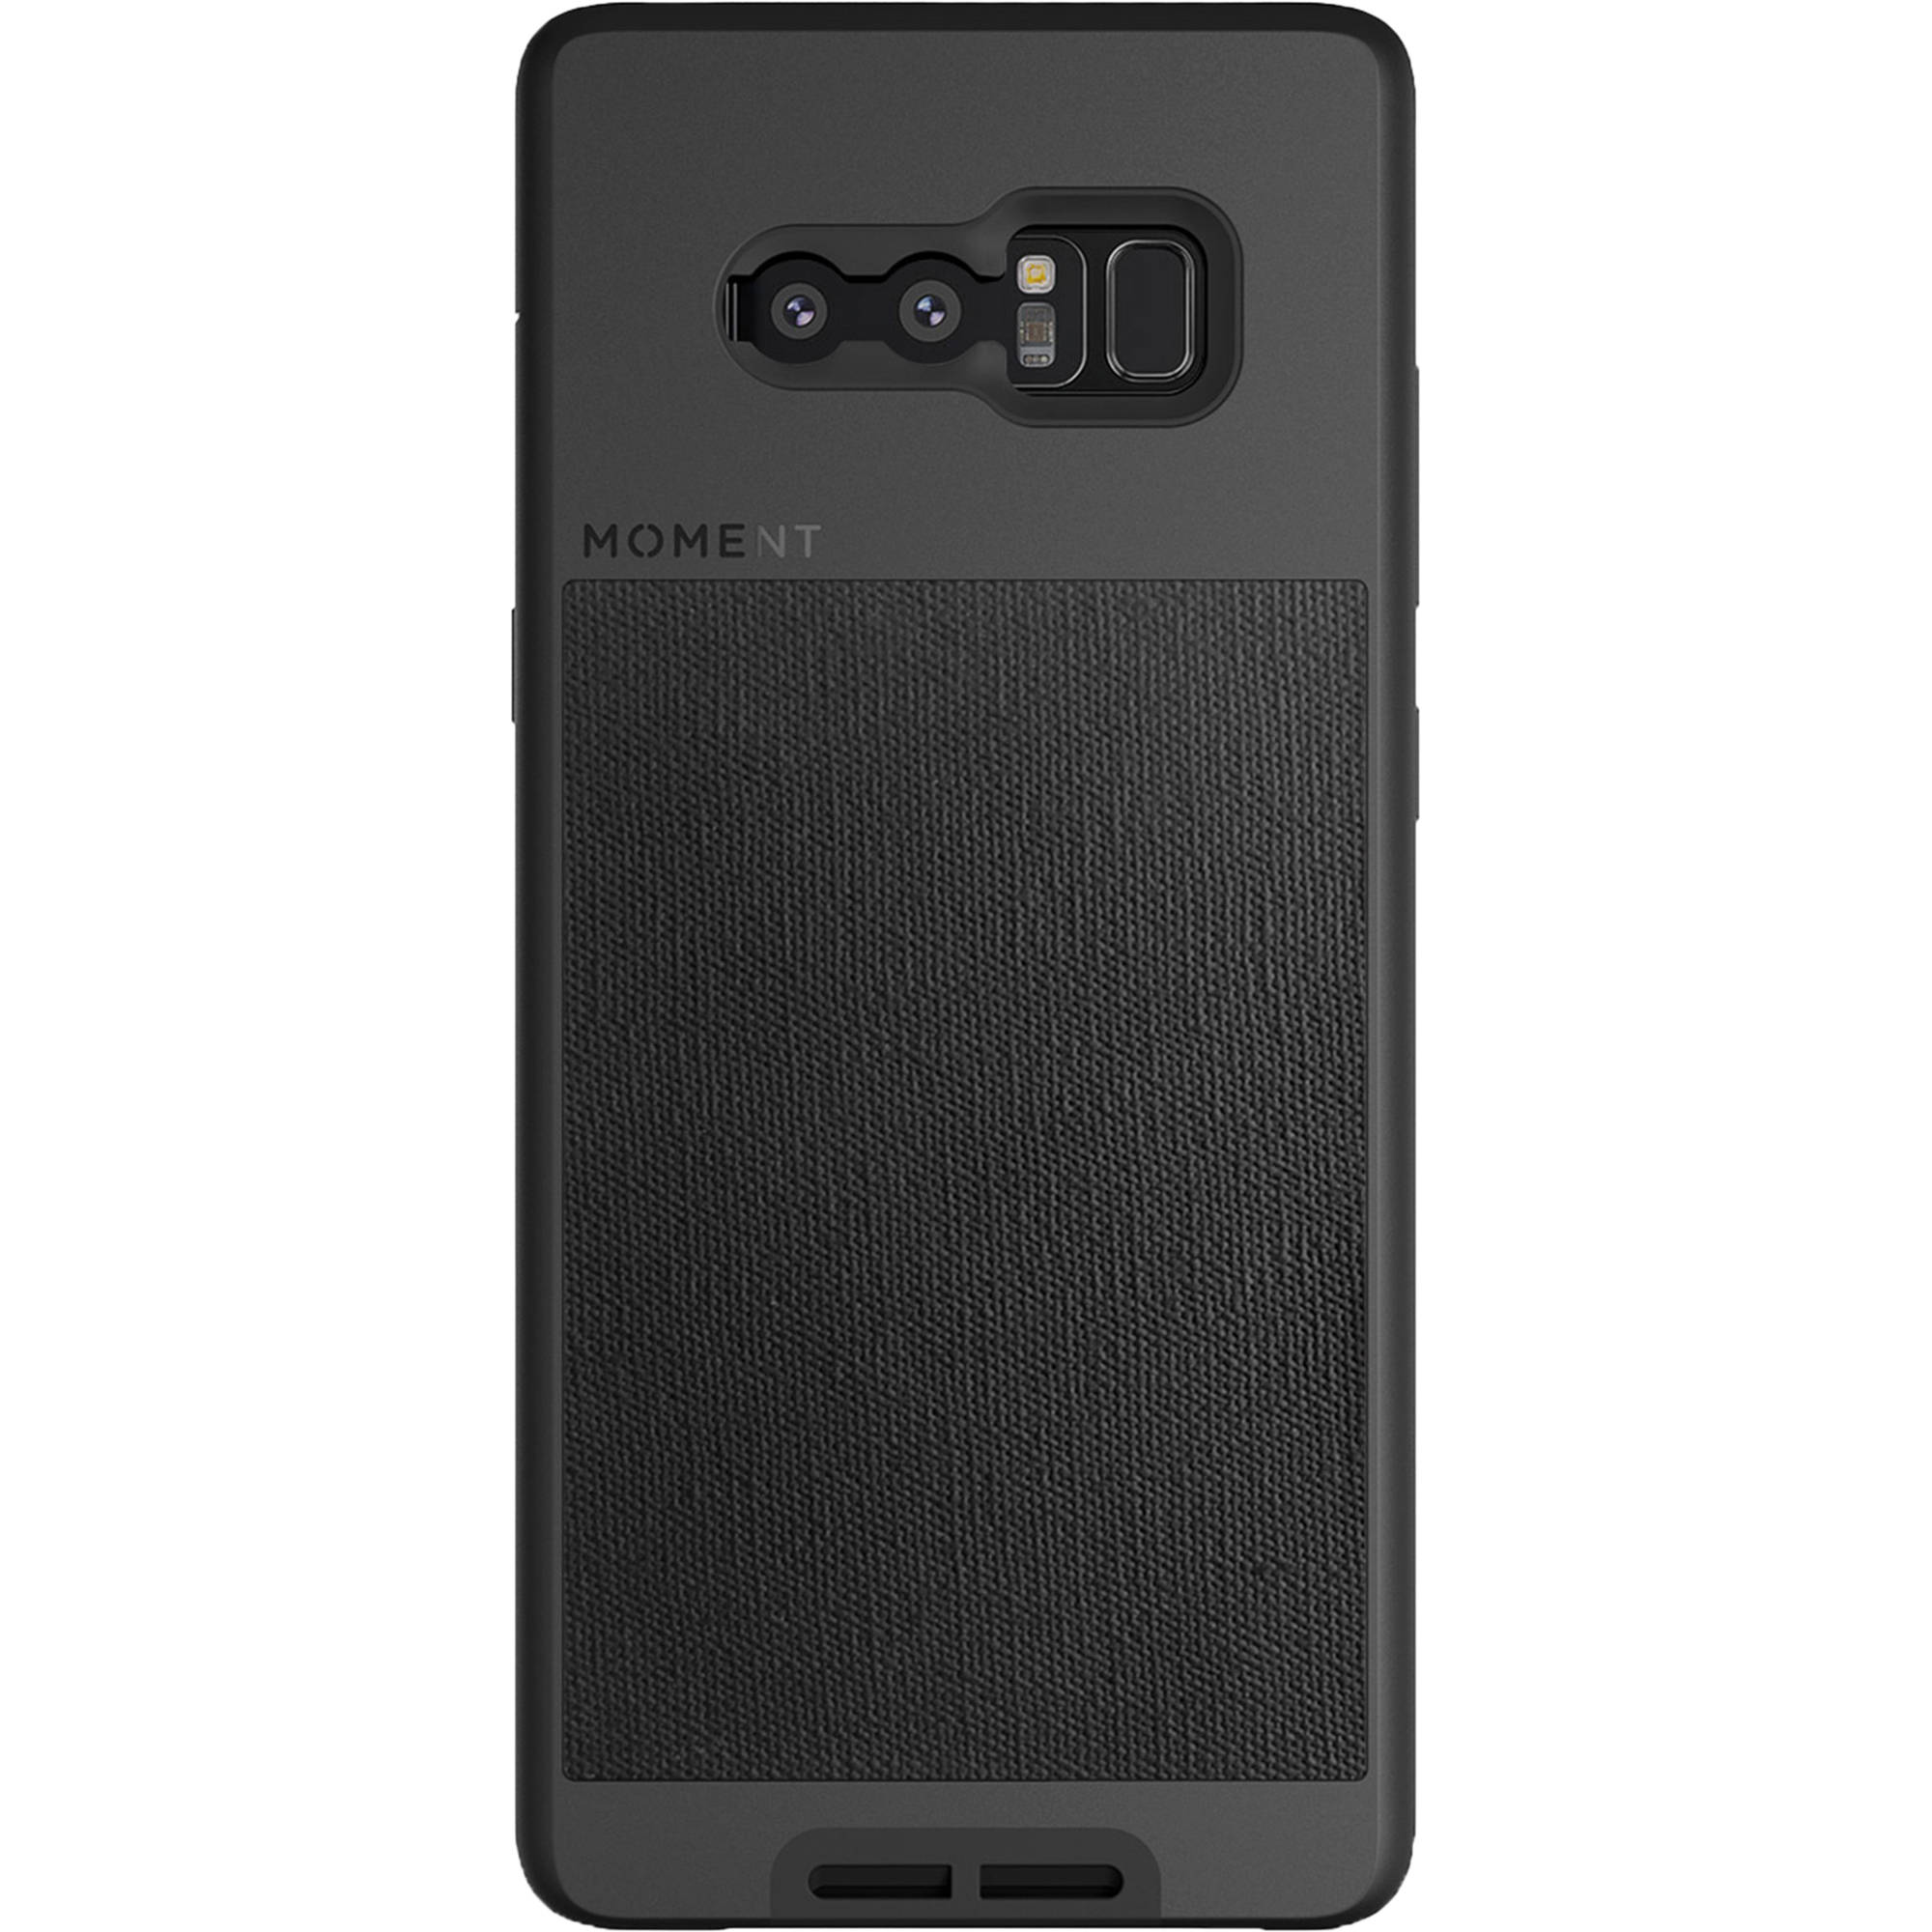 huge discount a4d42 2d919 Moment Photo Case for Galaxy Note 8 (Black Canvas)